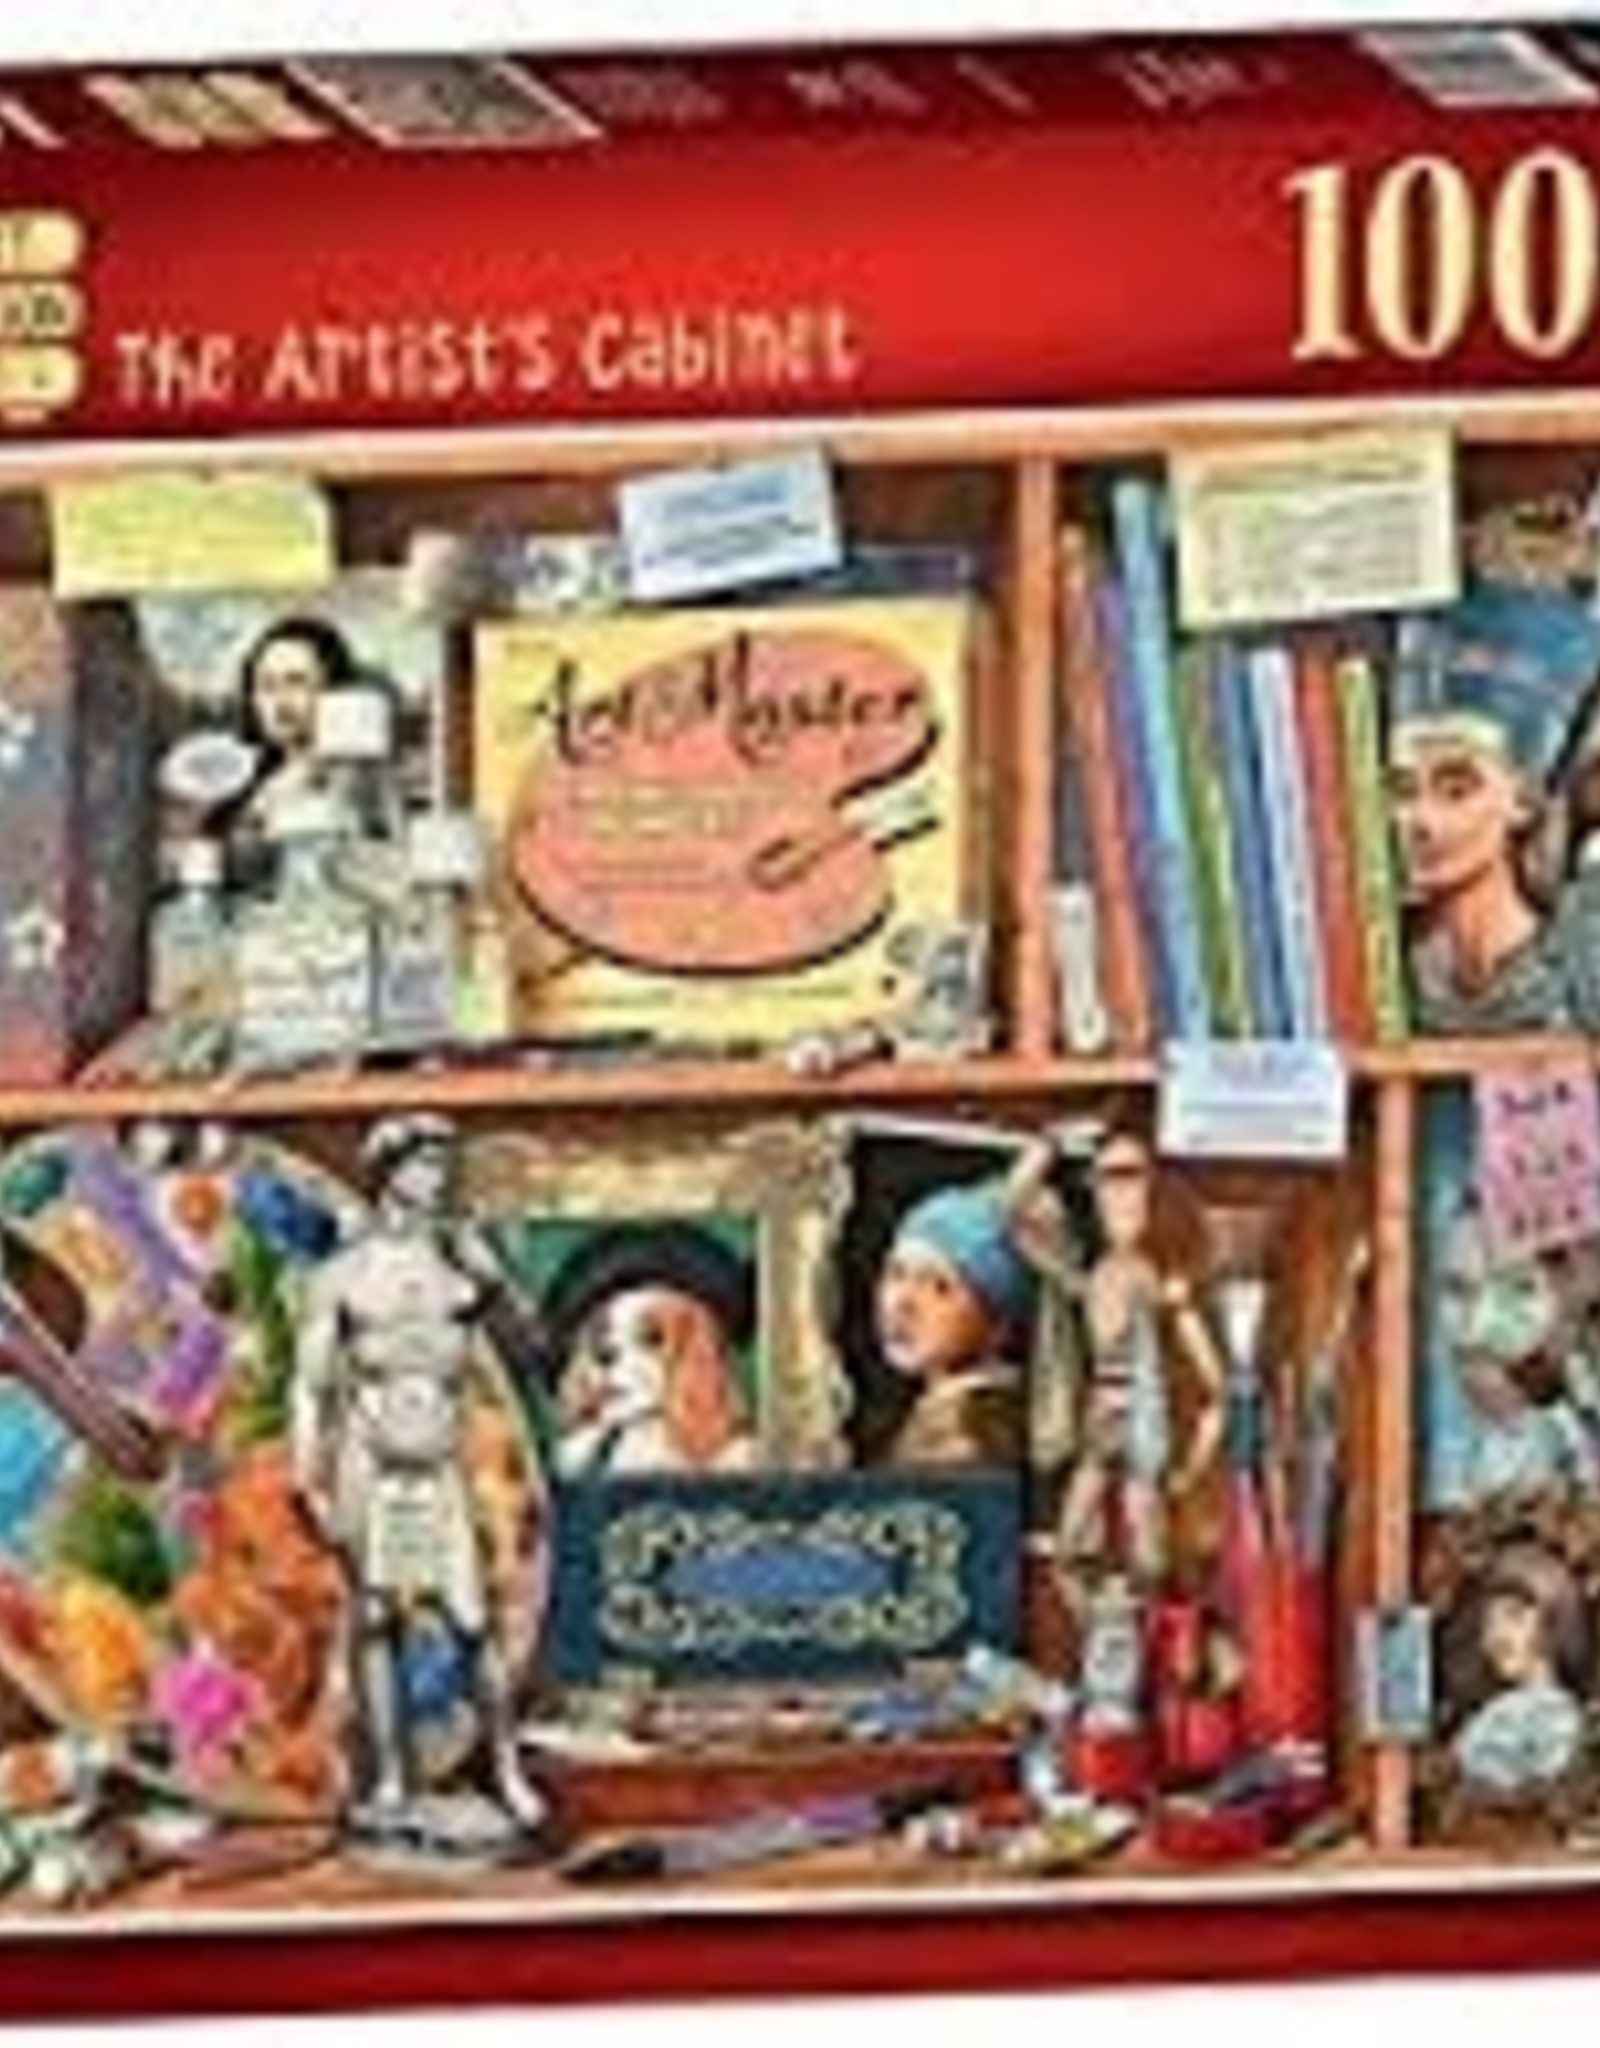 Ravensburger 1000pc puzzle The Artist's Cabinet